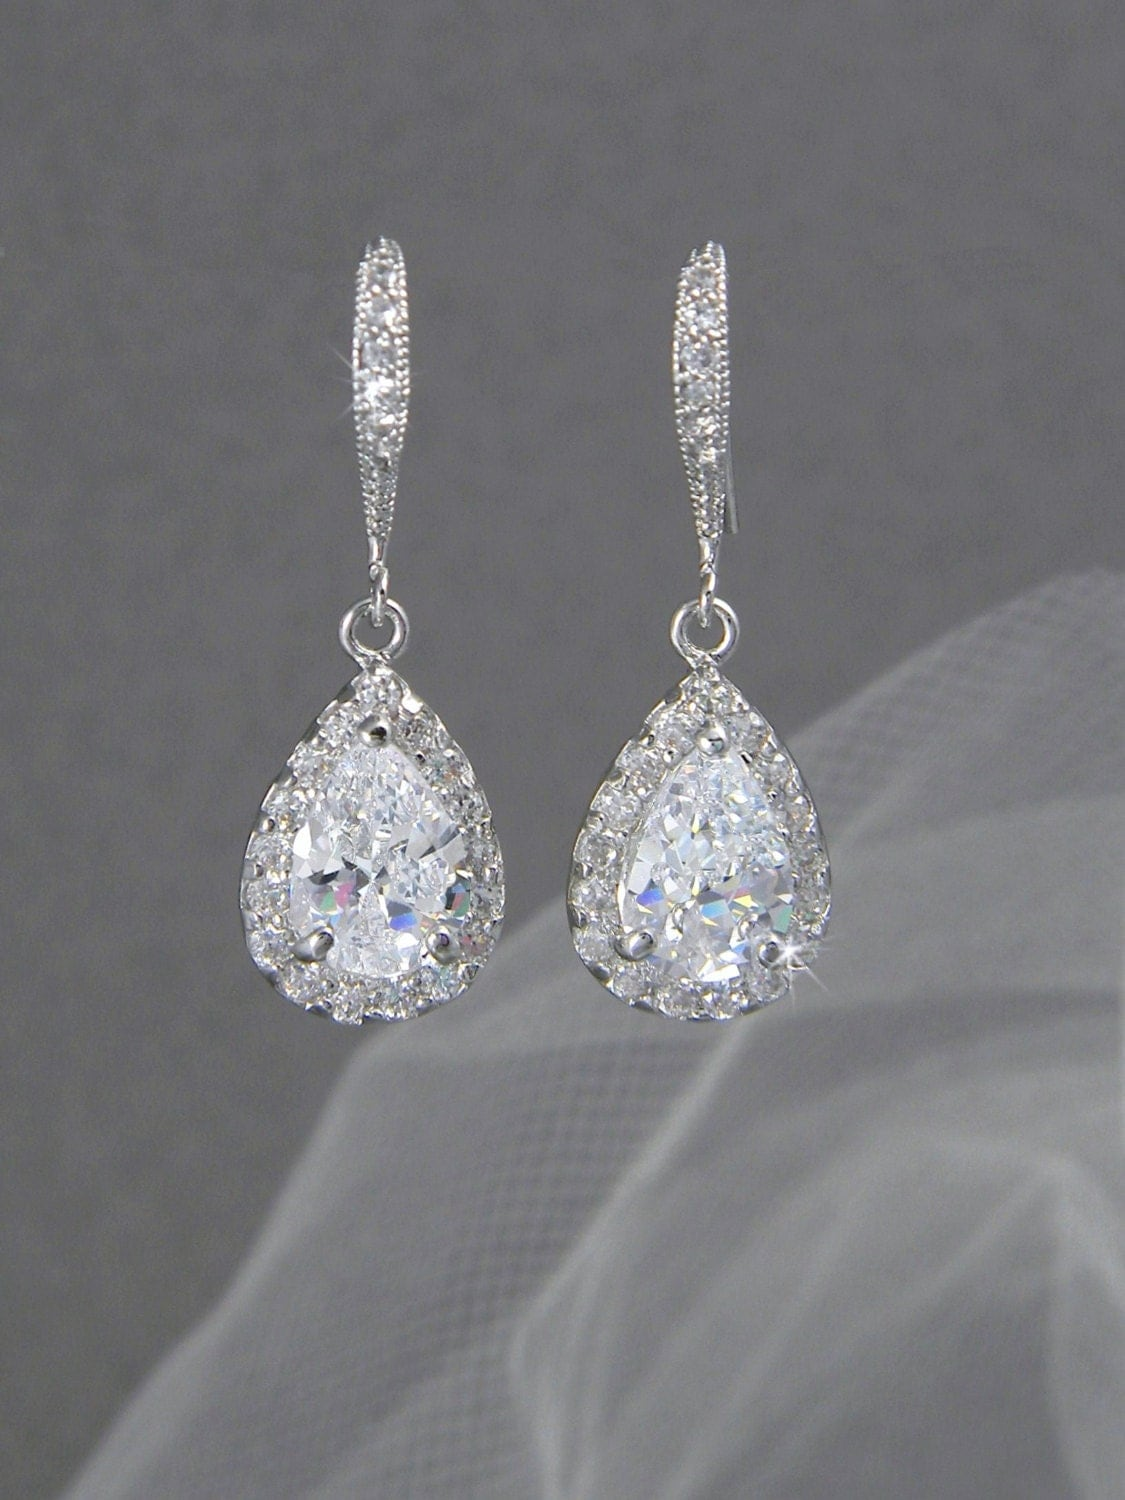 Etsy Wedding Gift Jewelry : ... Wedding jewelry Swarovski Crystal Wedding earrings Bridal jewelry